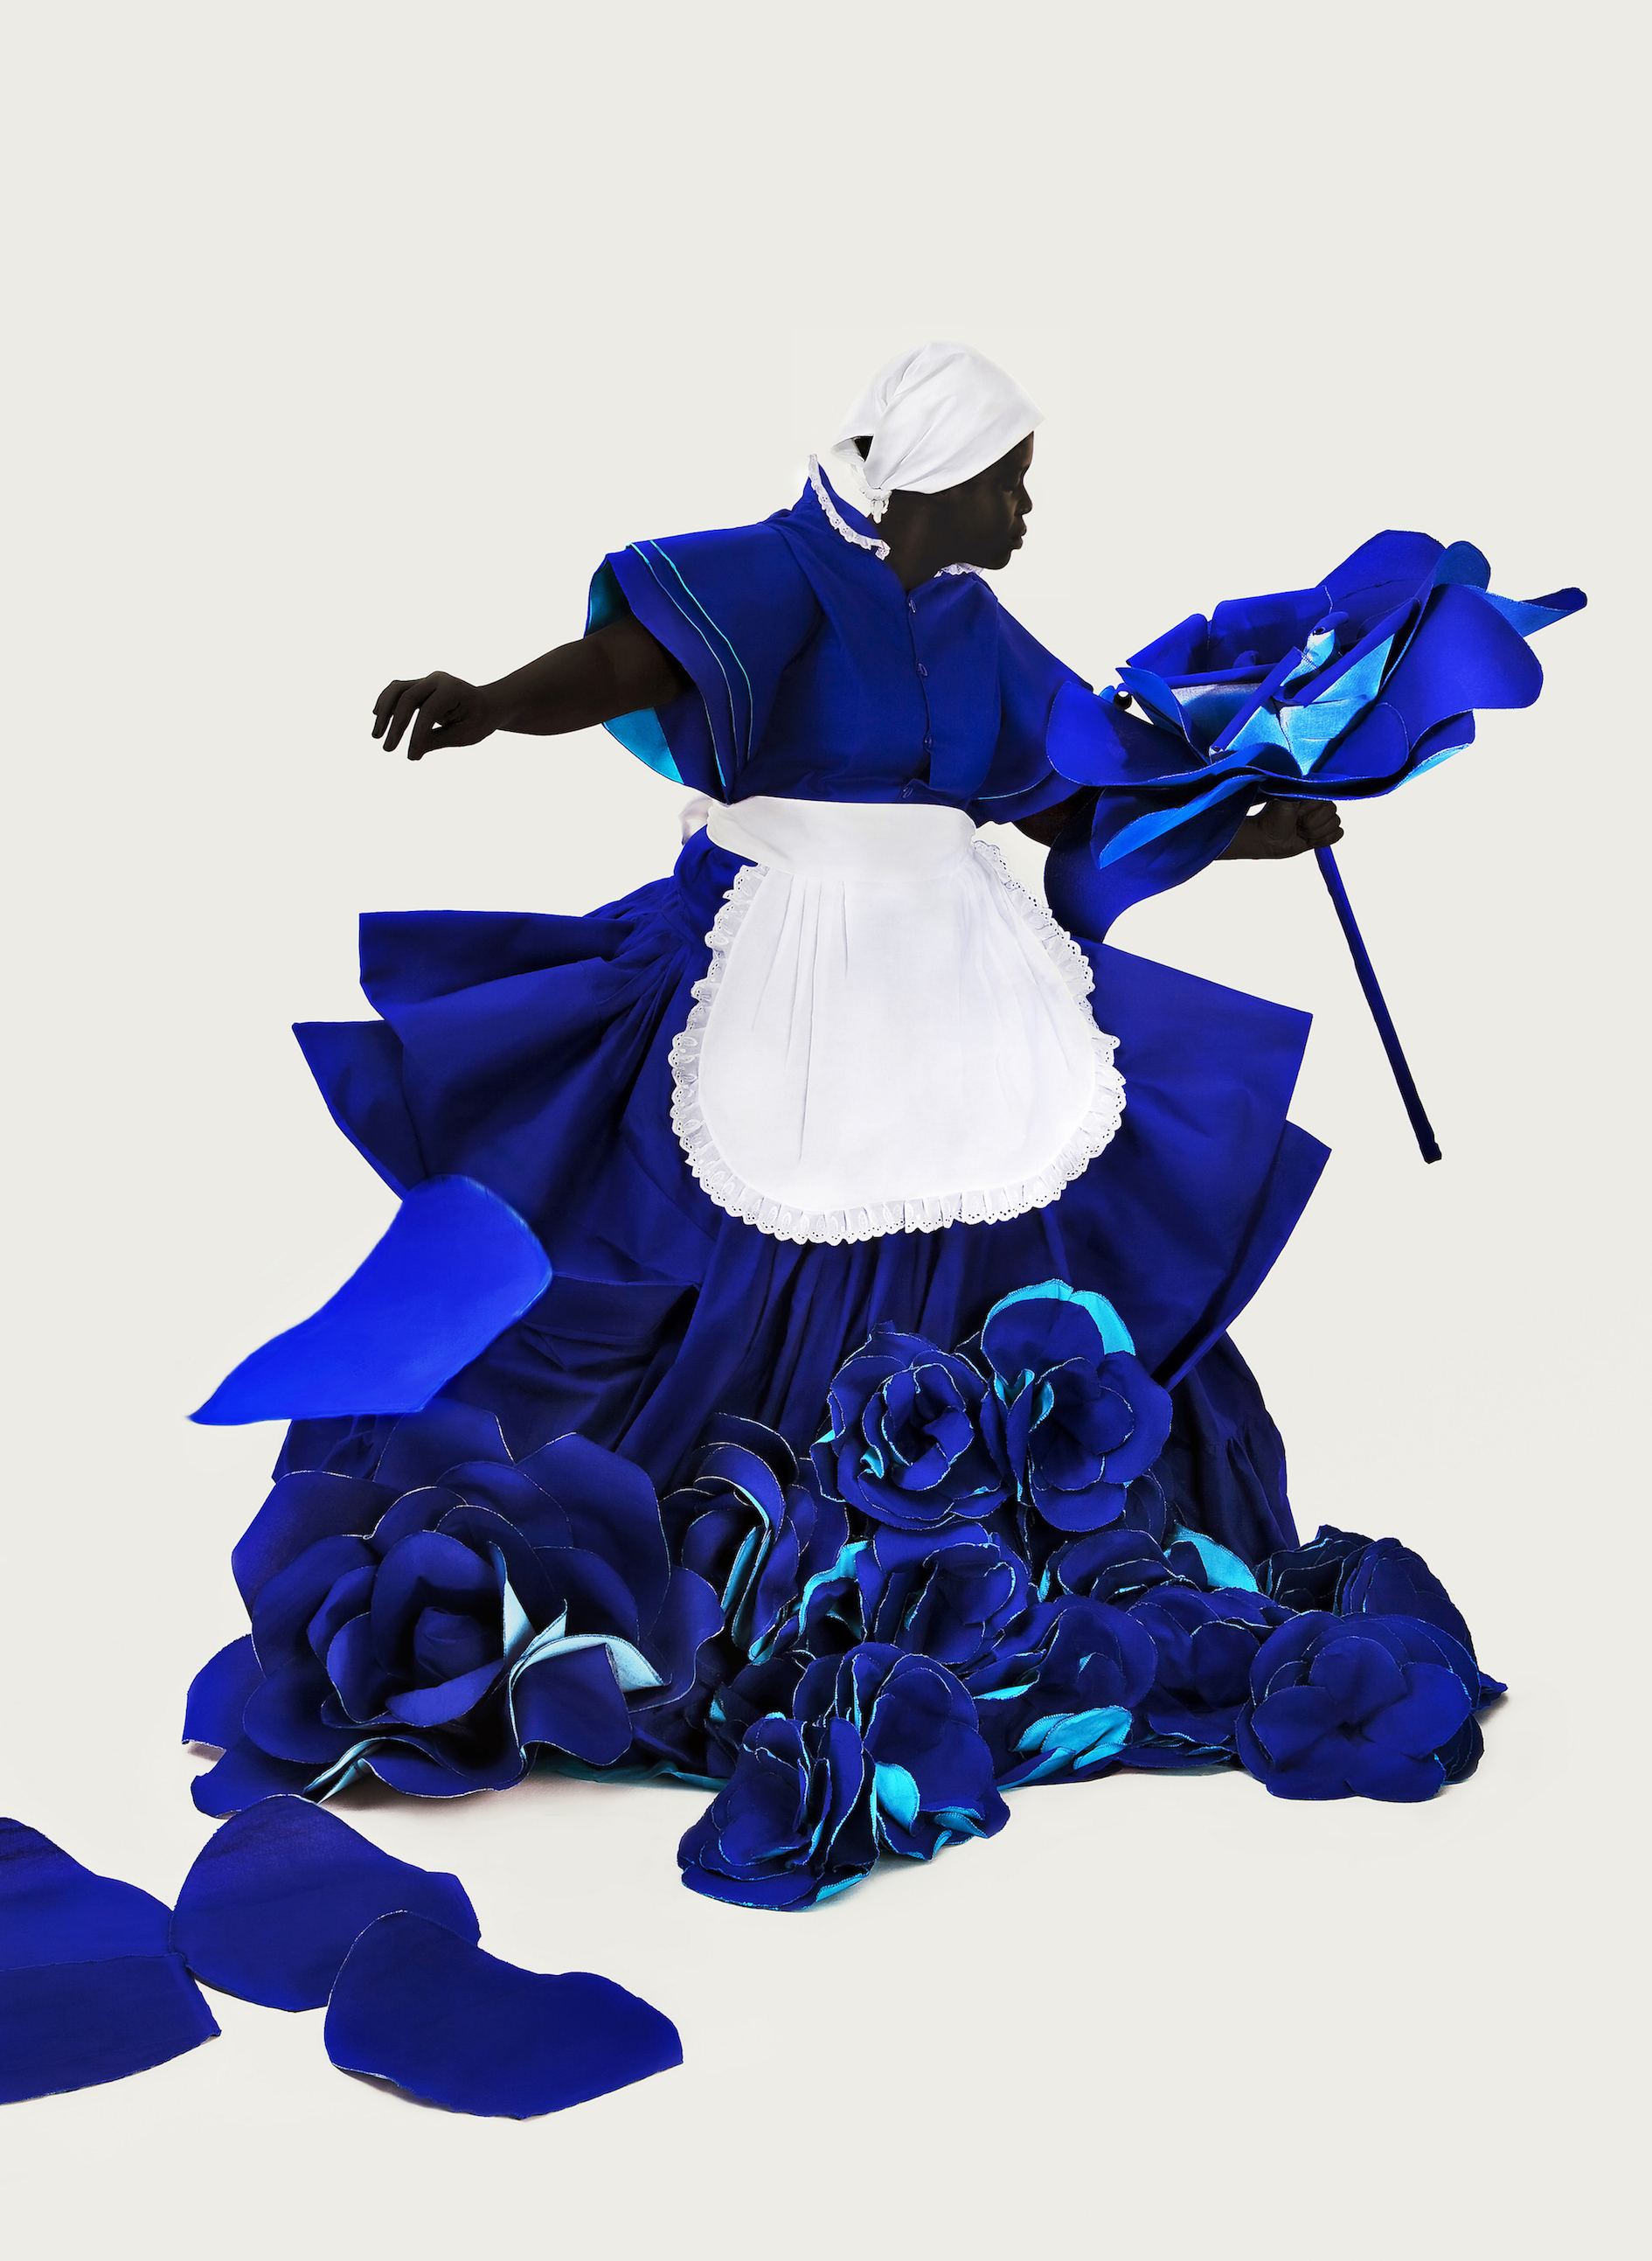 MARY SIBANDE, I have not, I have, 2010, Digital print, 110 x 80 cm, University of the Free State Art Collection